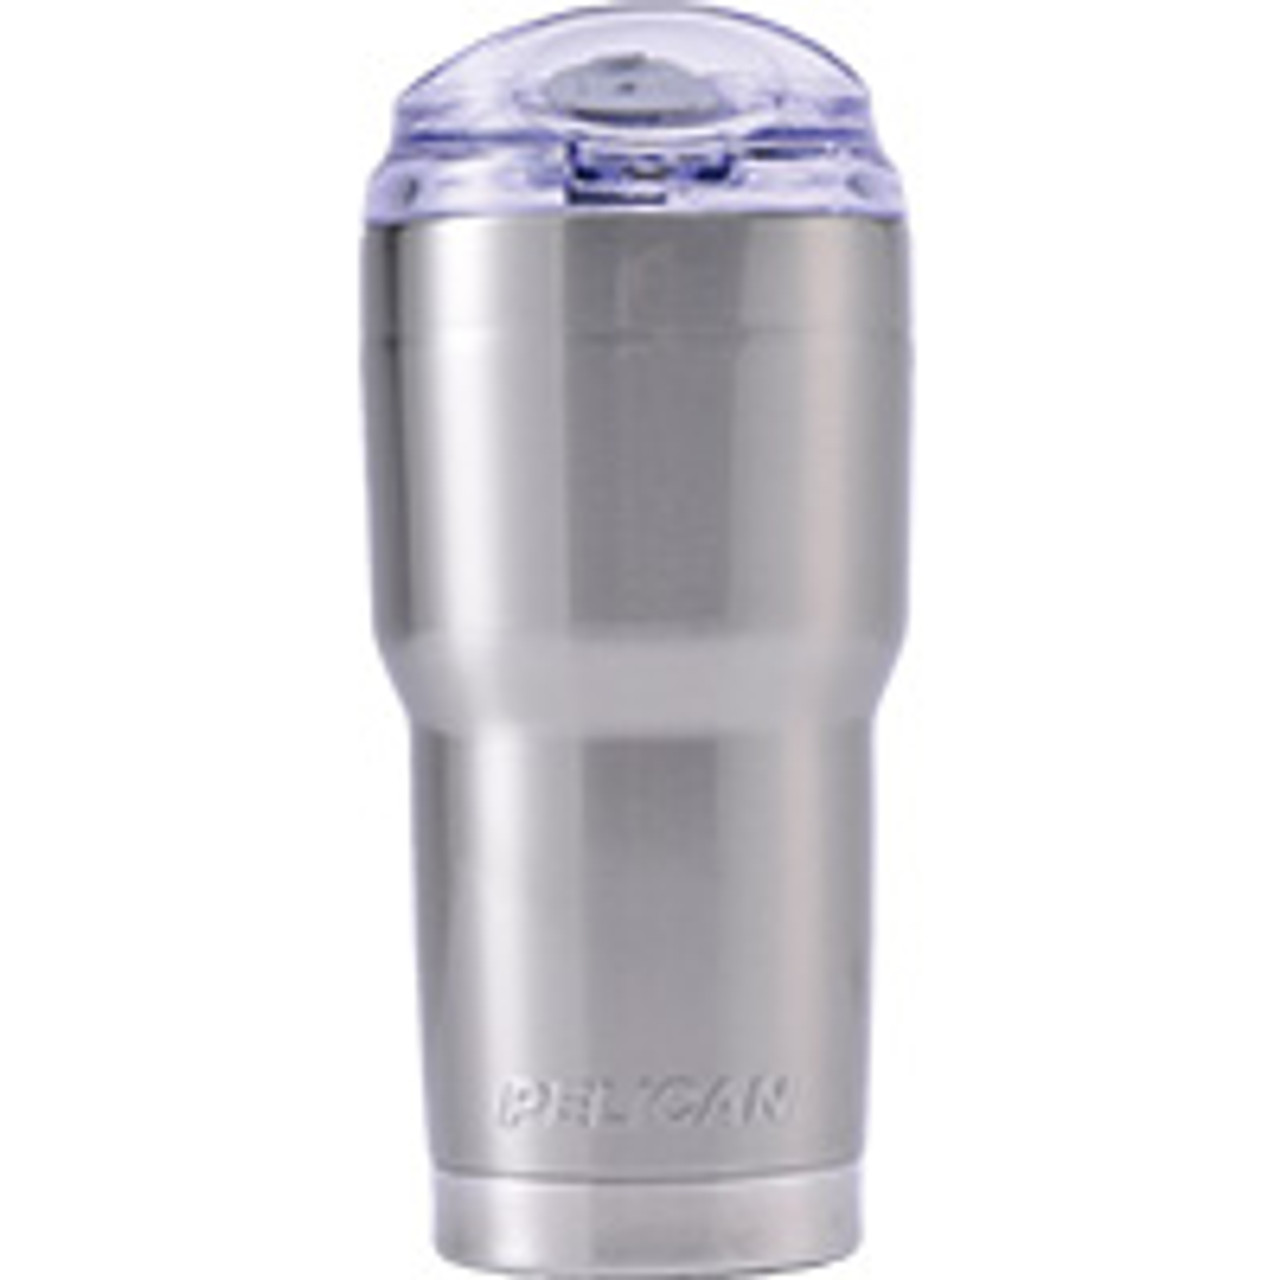 Pelican 22oz Traveler Tumbler, Stainless Steel